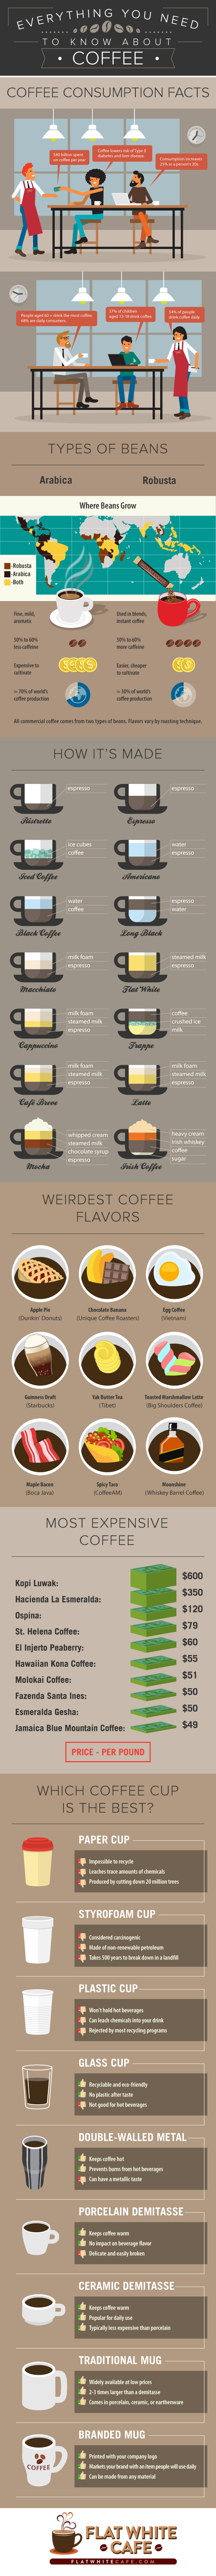 coffee-infographic-everything-you-need-to-know-about-coffee